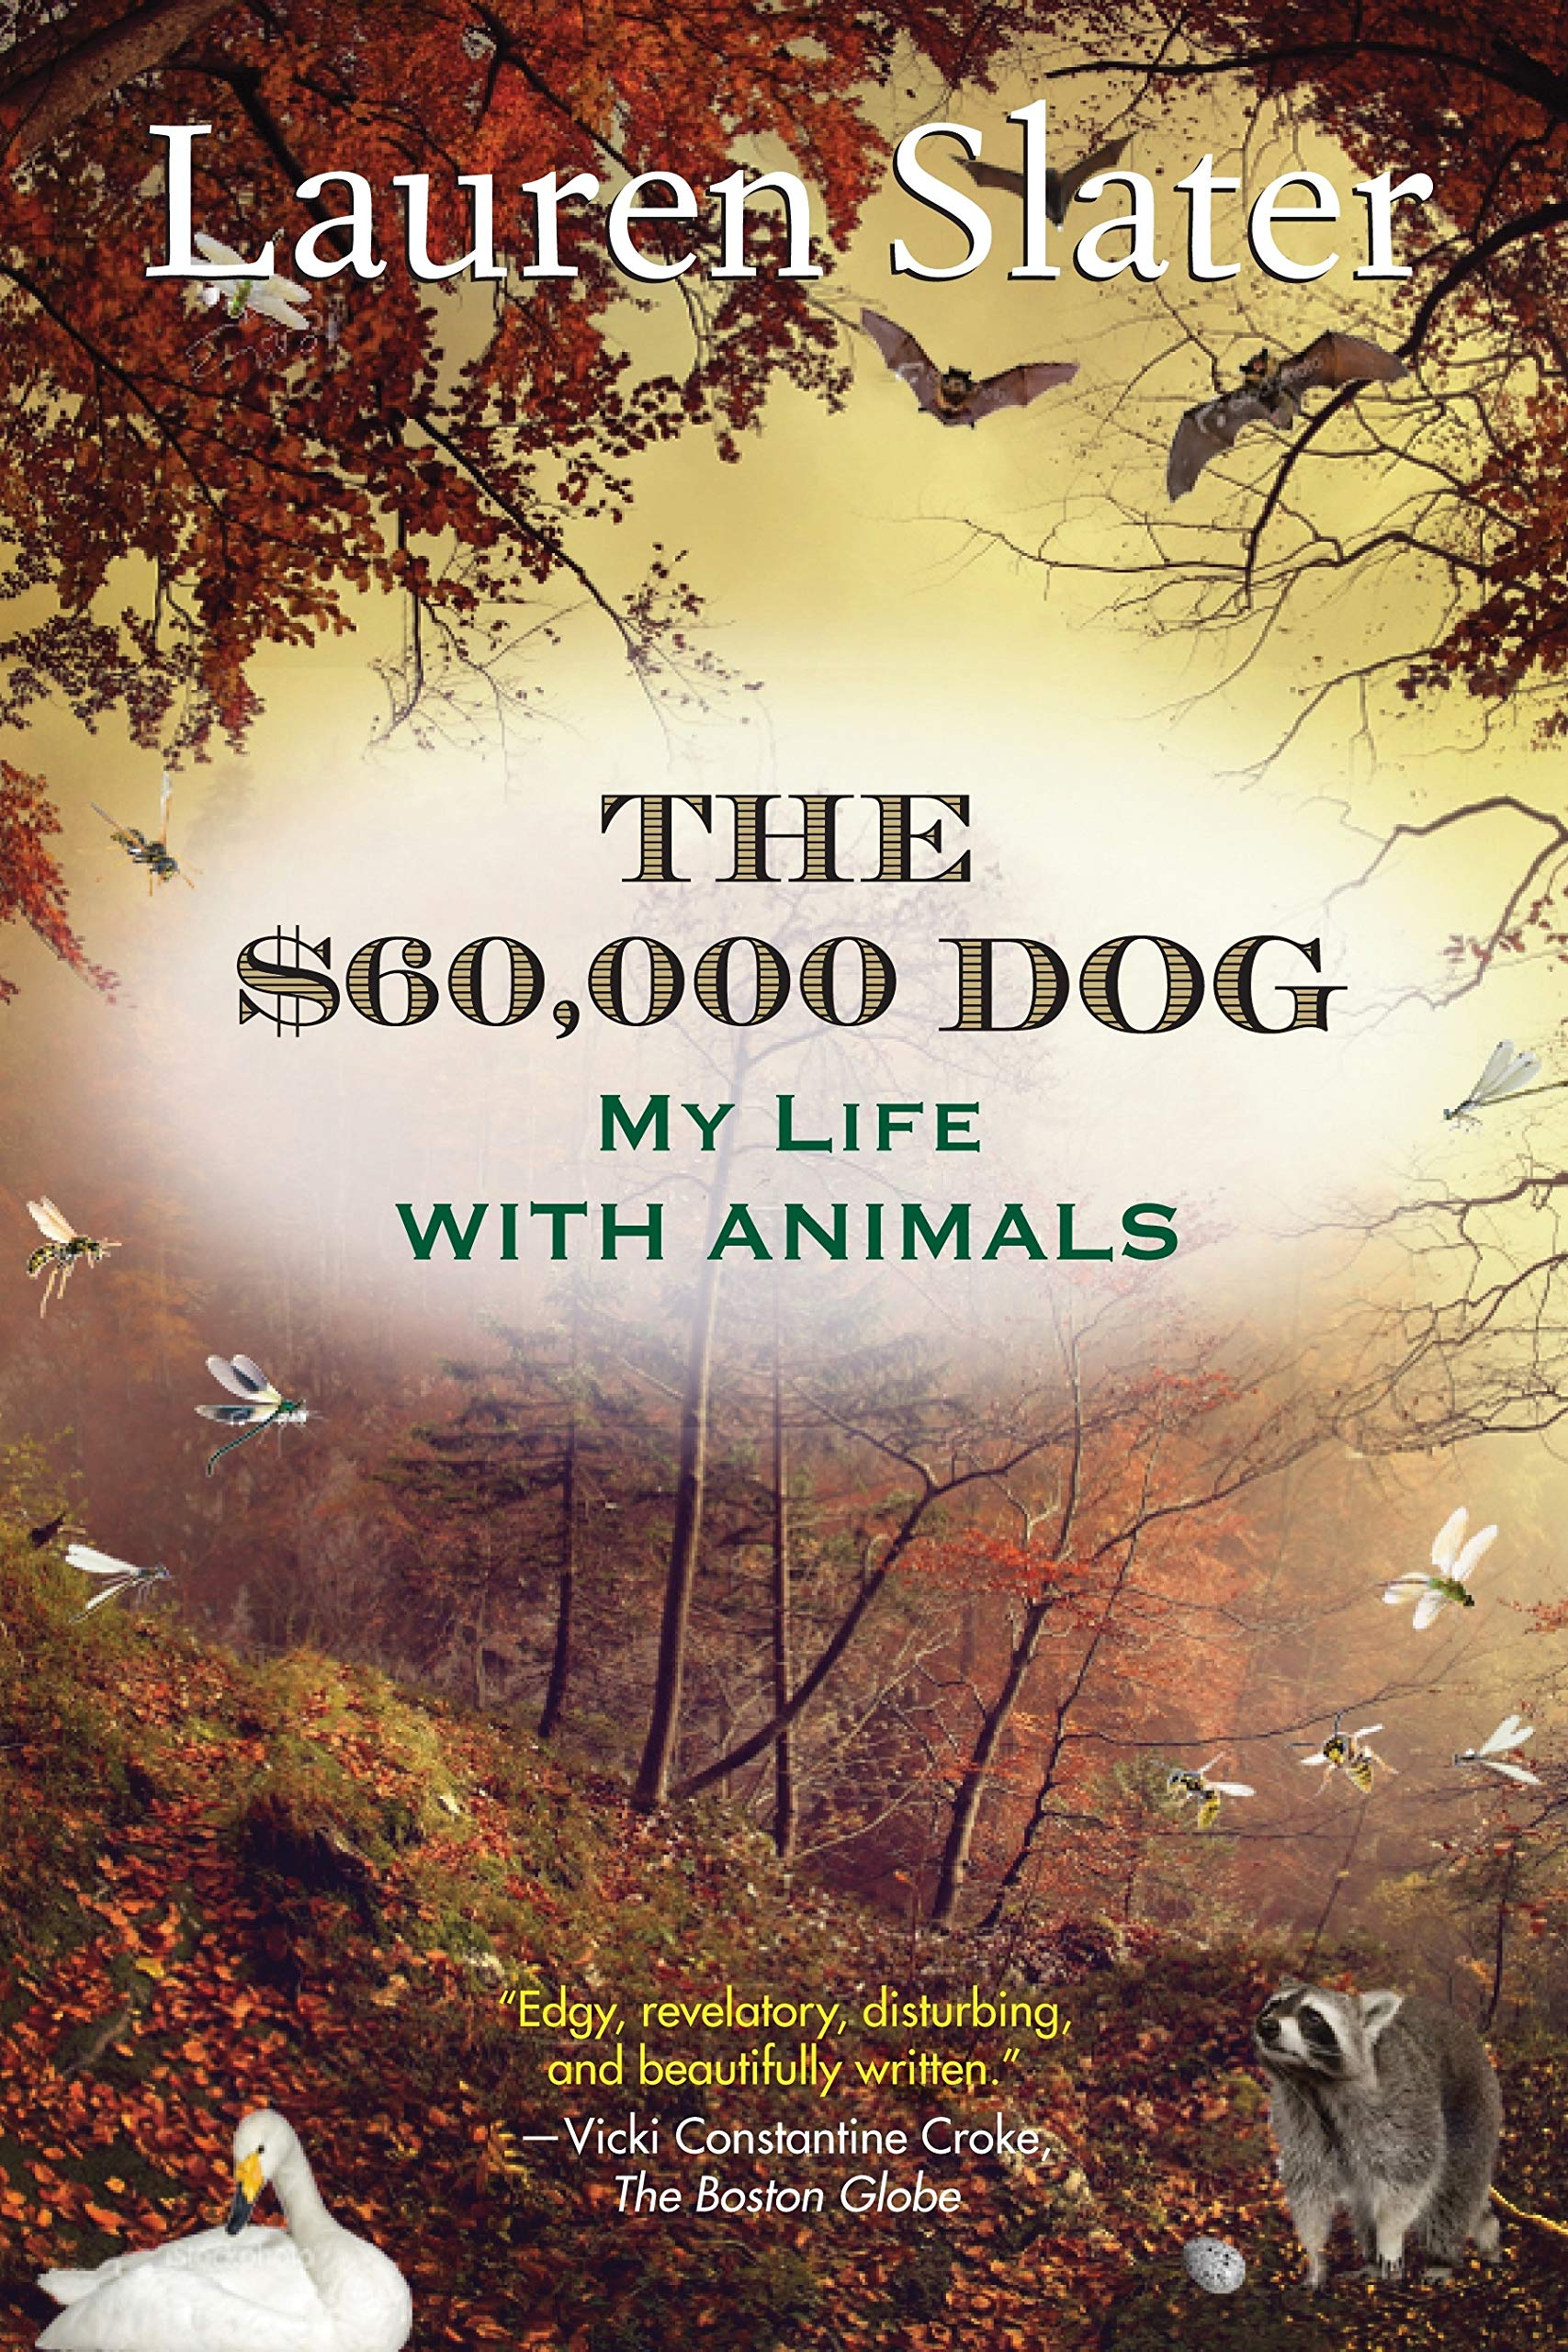 The $60,000 Dog: My Life with Animals PDF